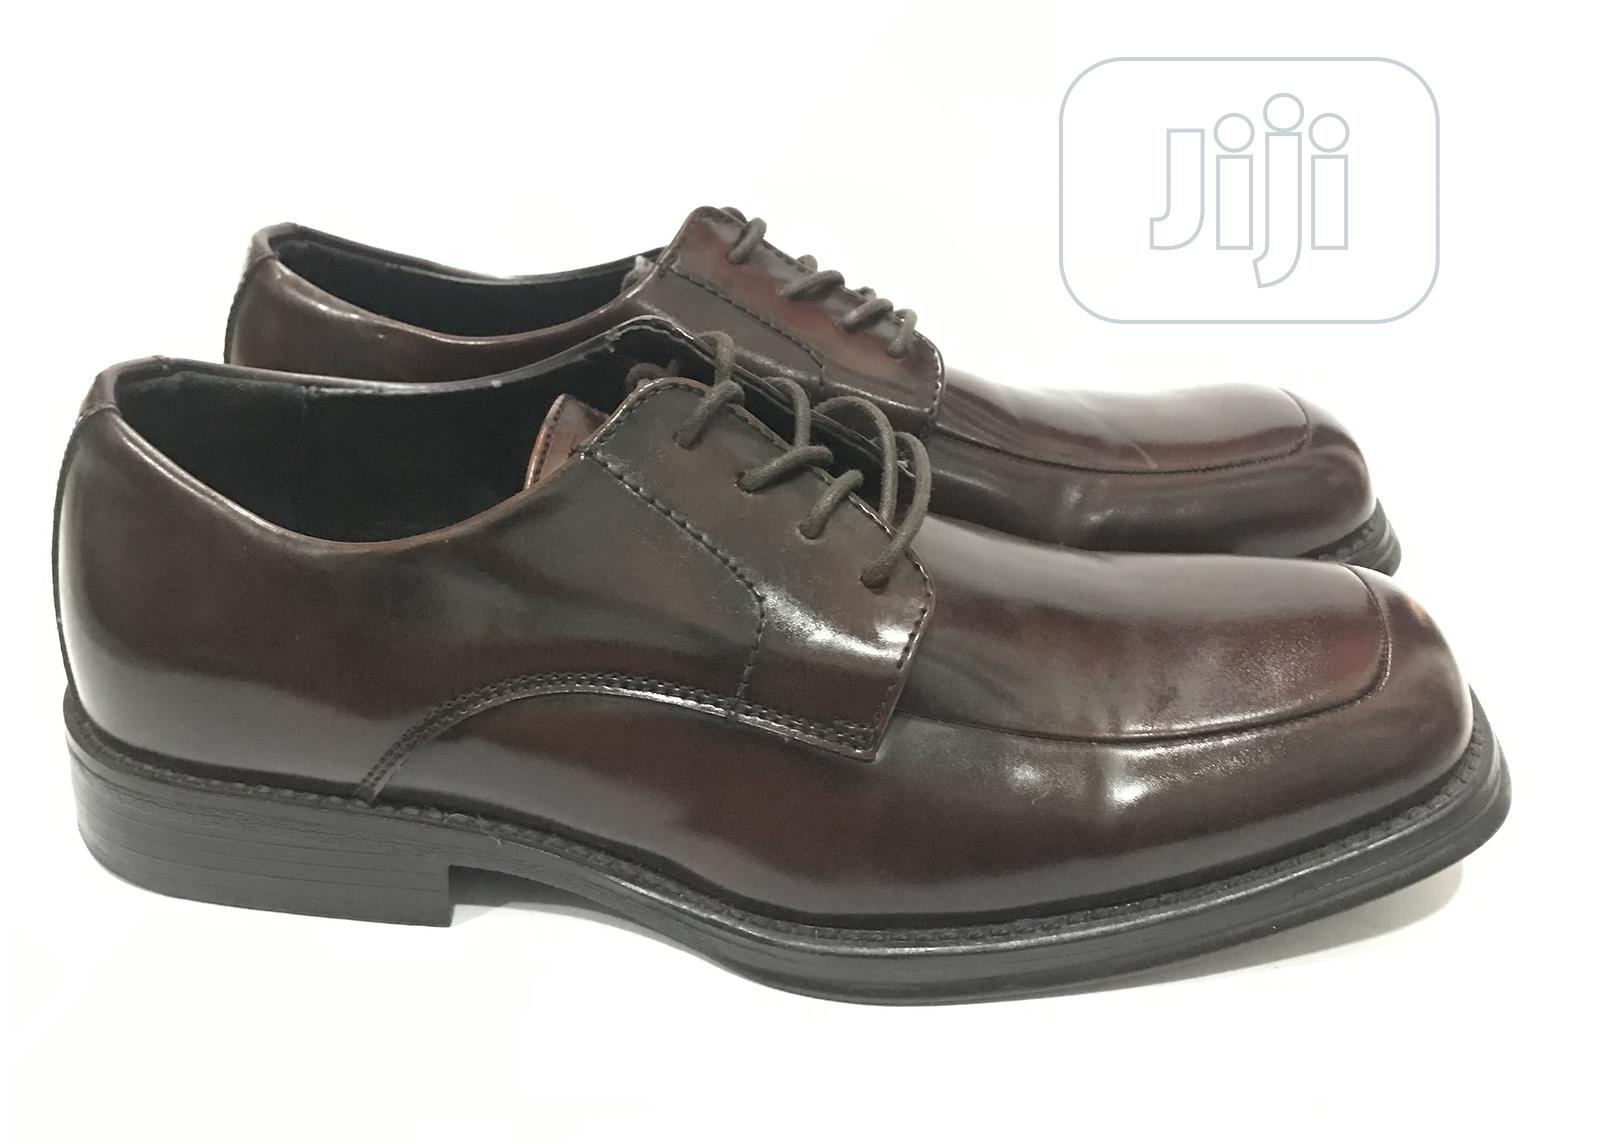 Kenneth Cole Reaction Lace-Up Shoes